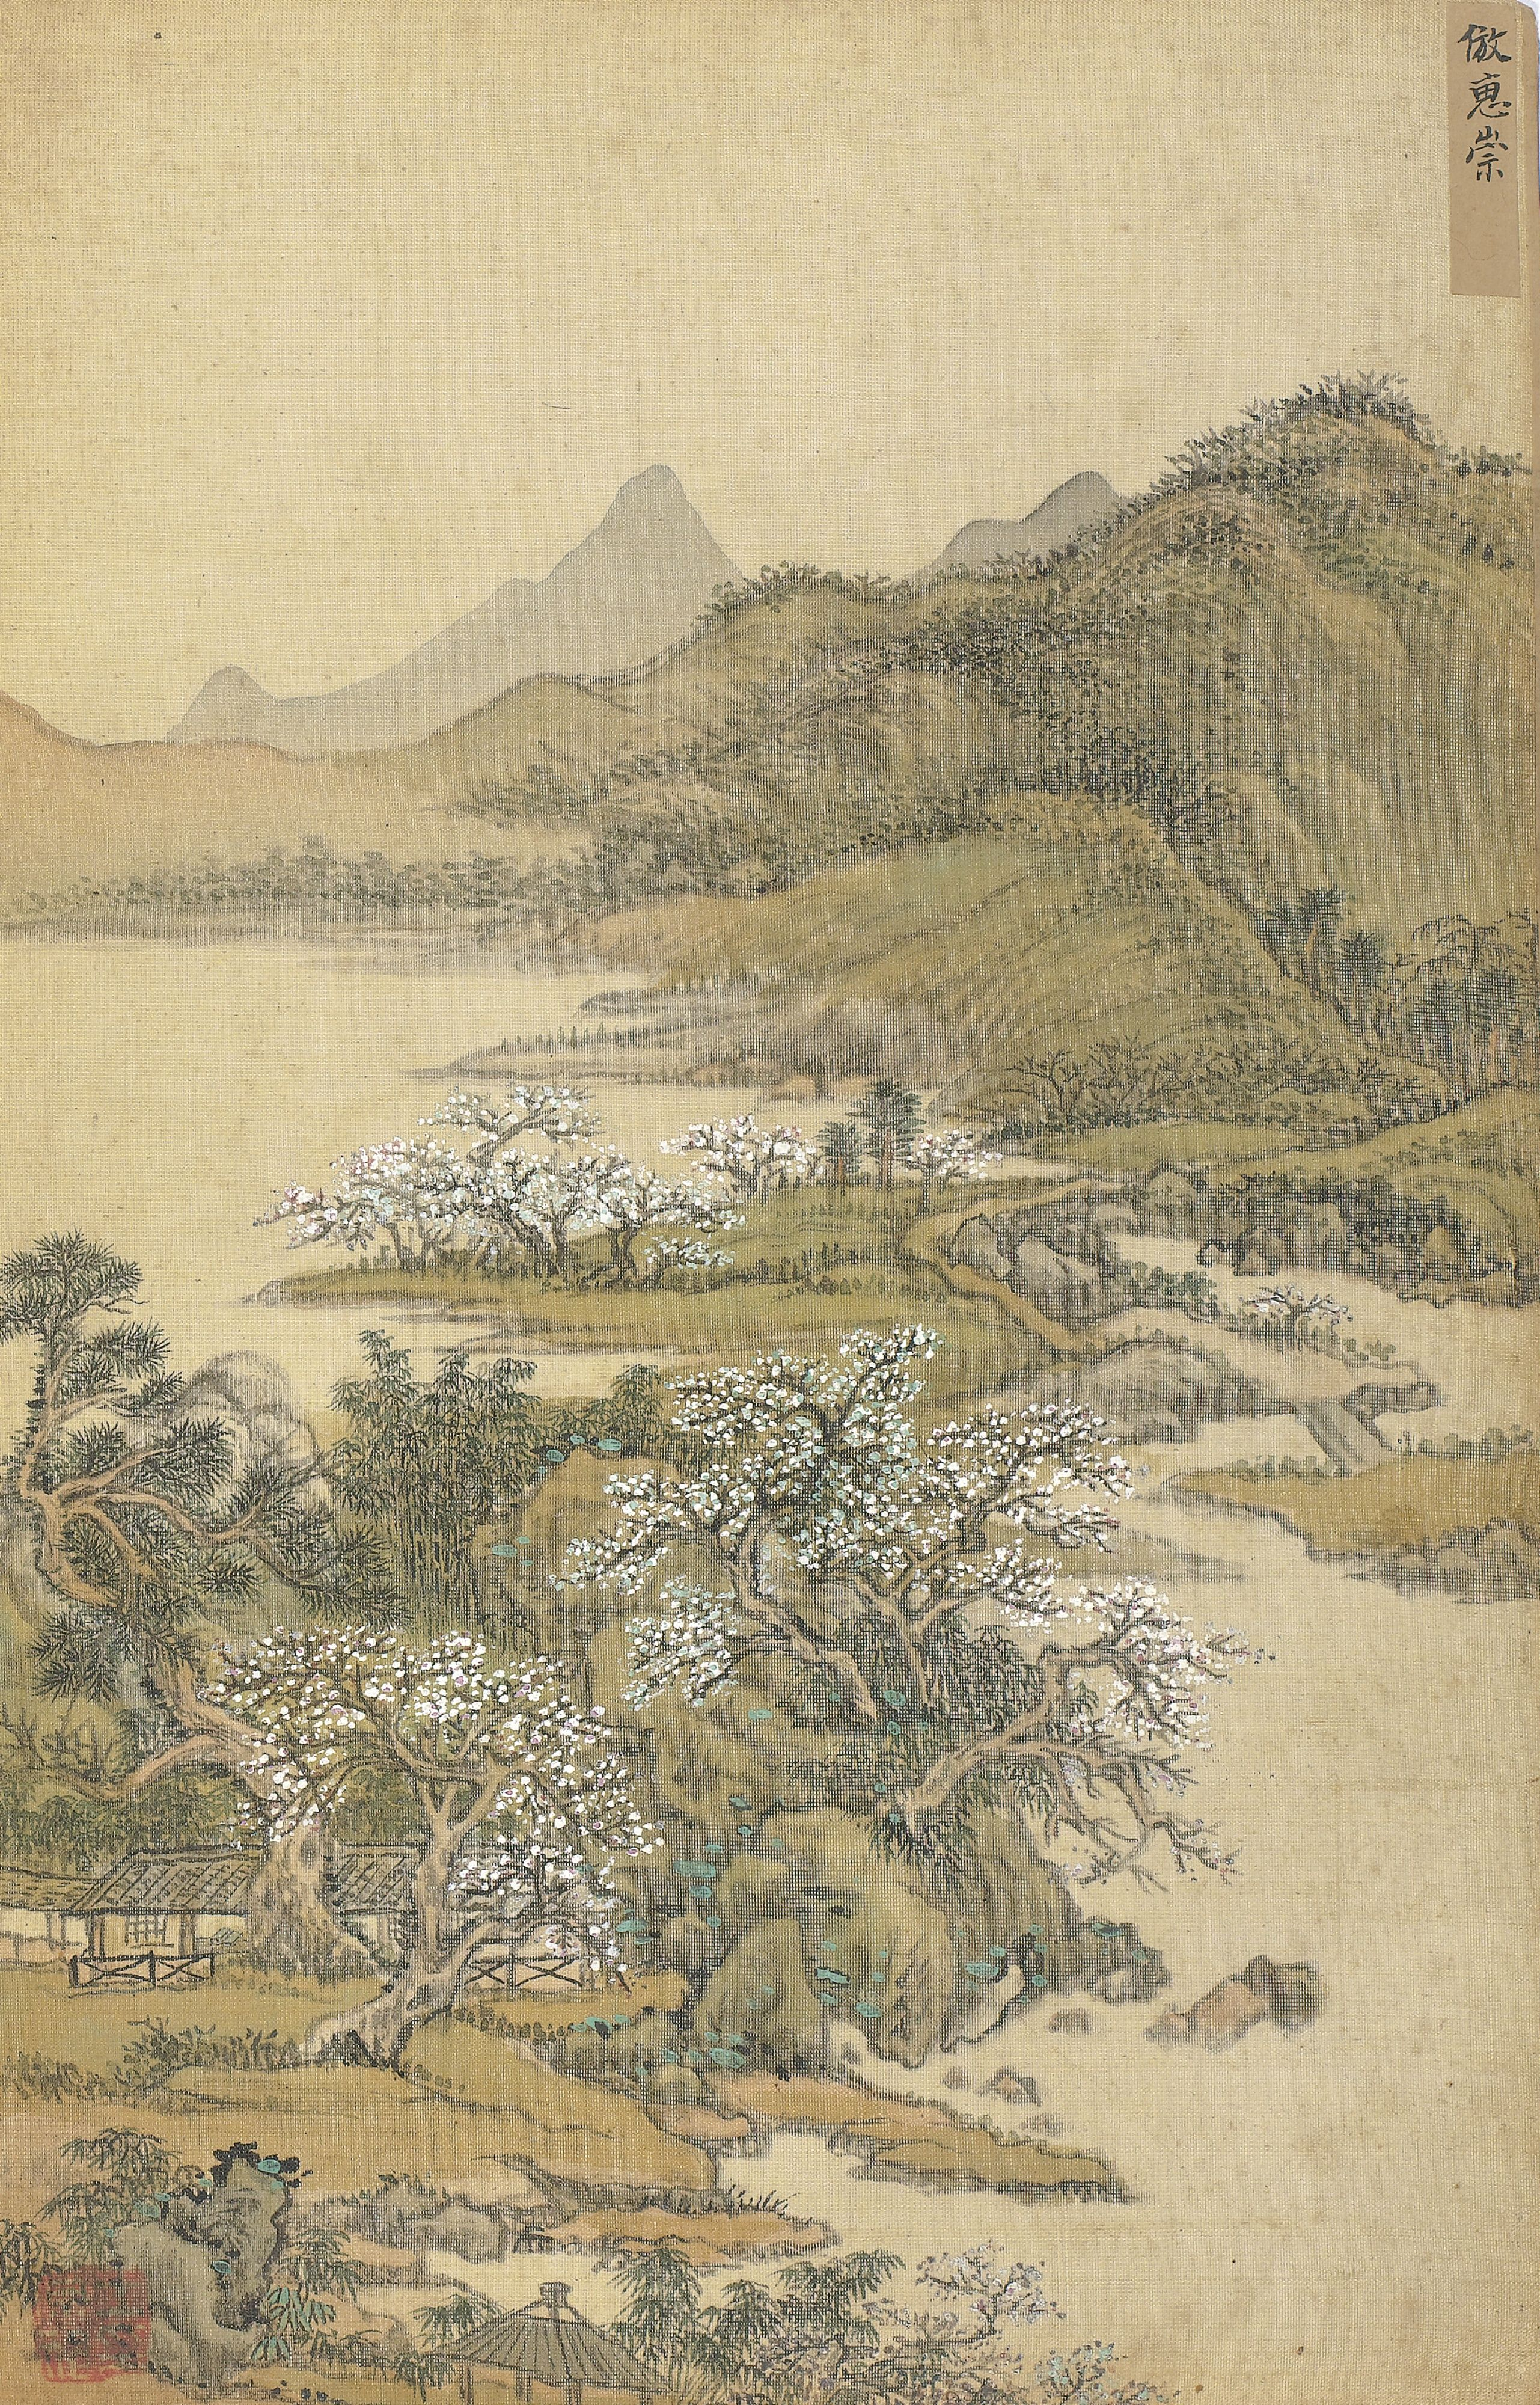 Wang Yuanqi Landscapes Aft Landscape Sotheby S N08835lot6brtlen In 2020 Chinese Art Landscape Chinese Painting